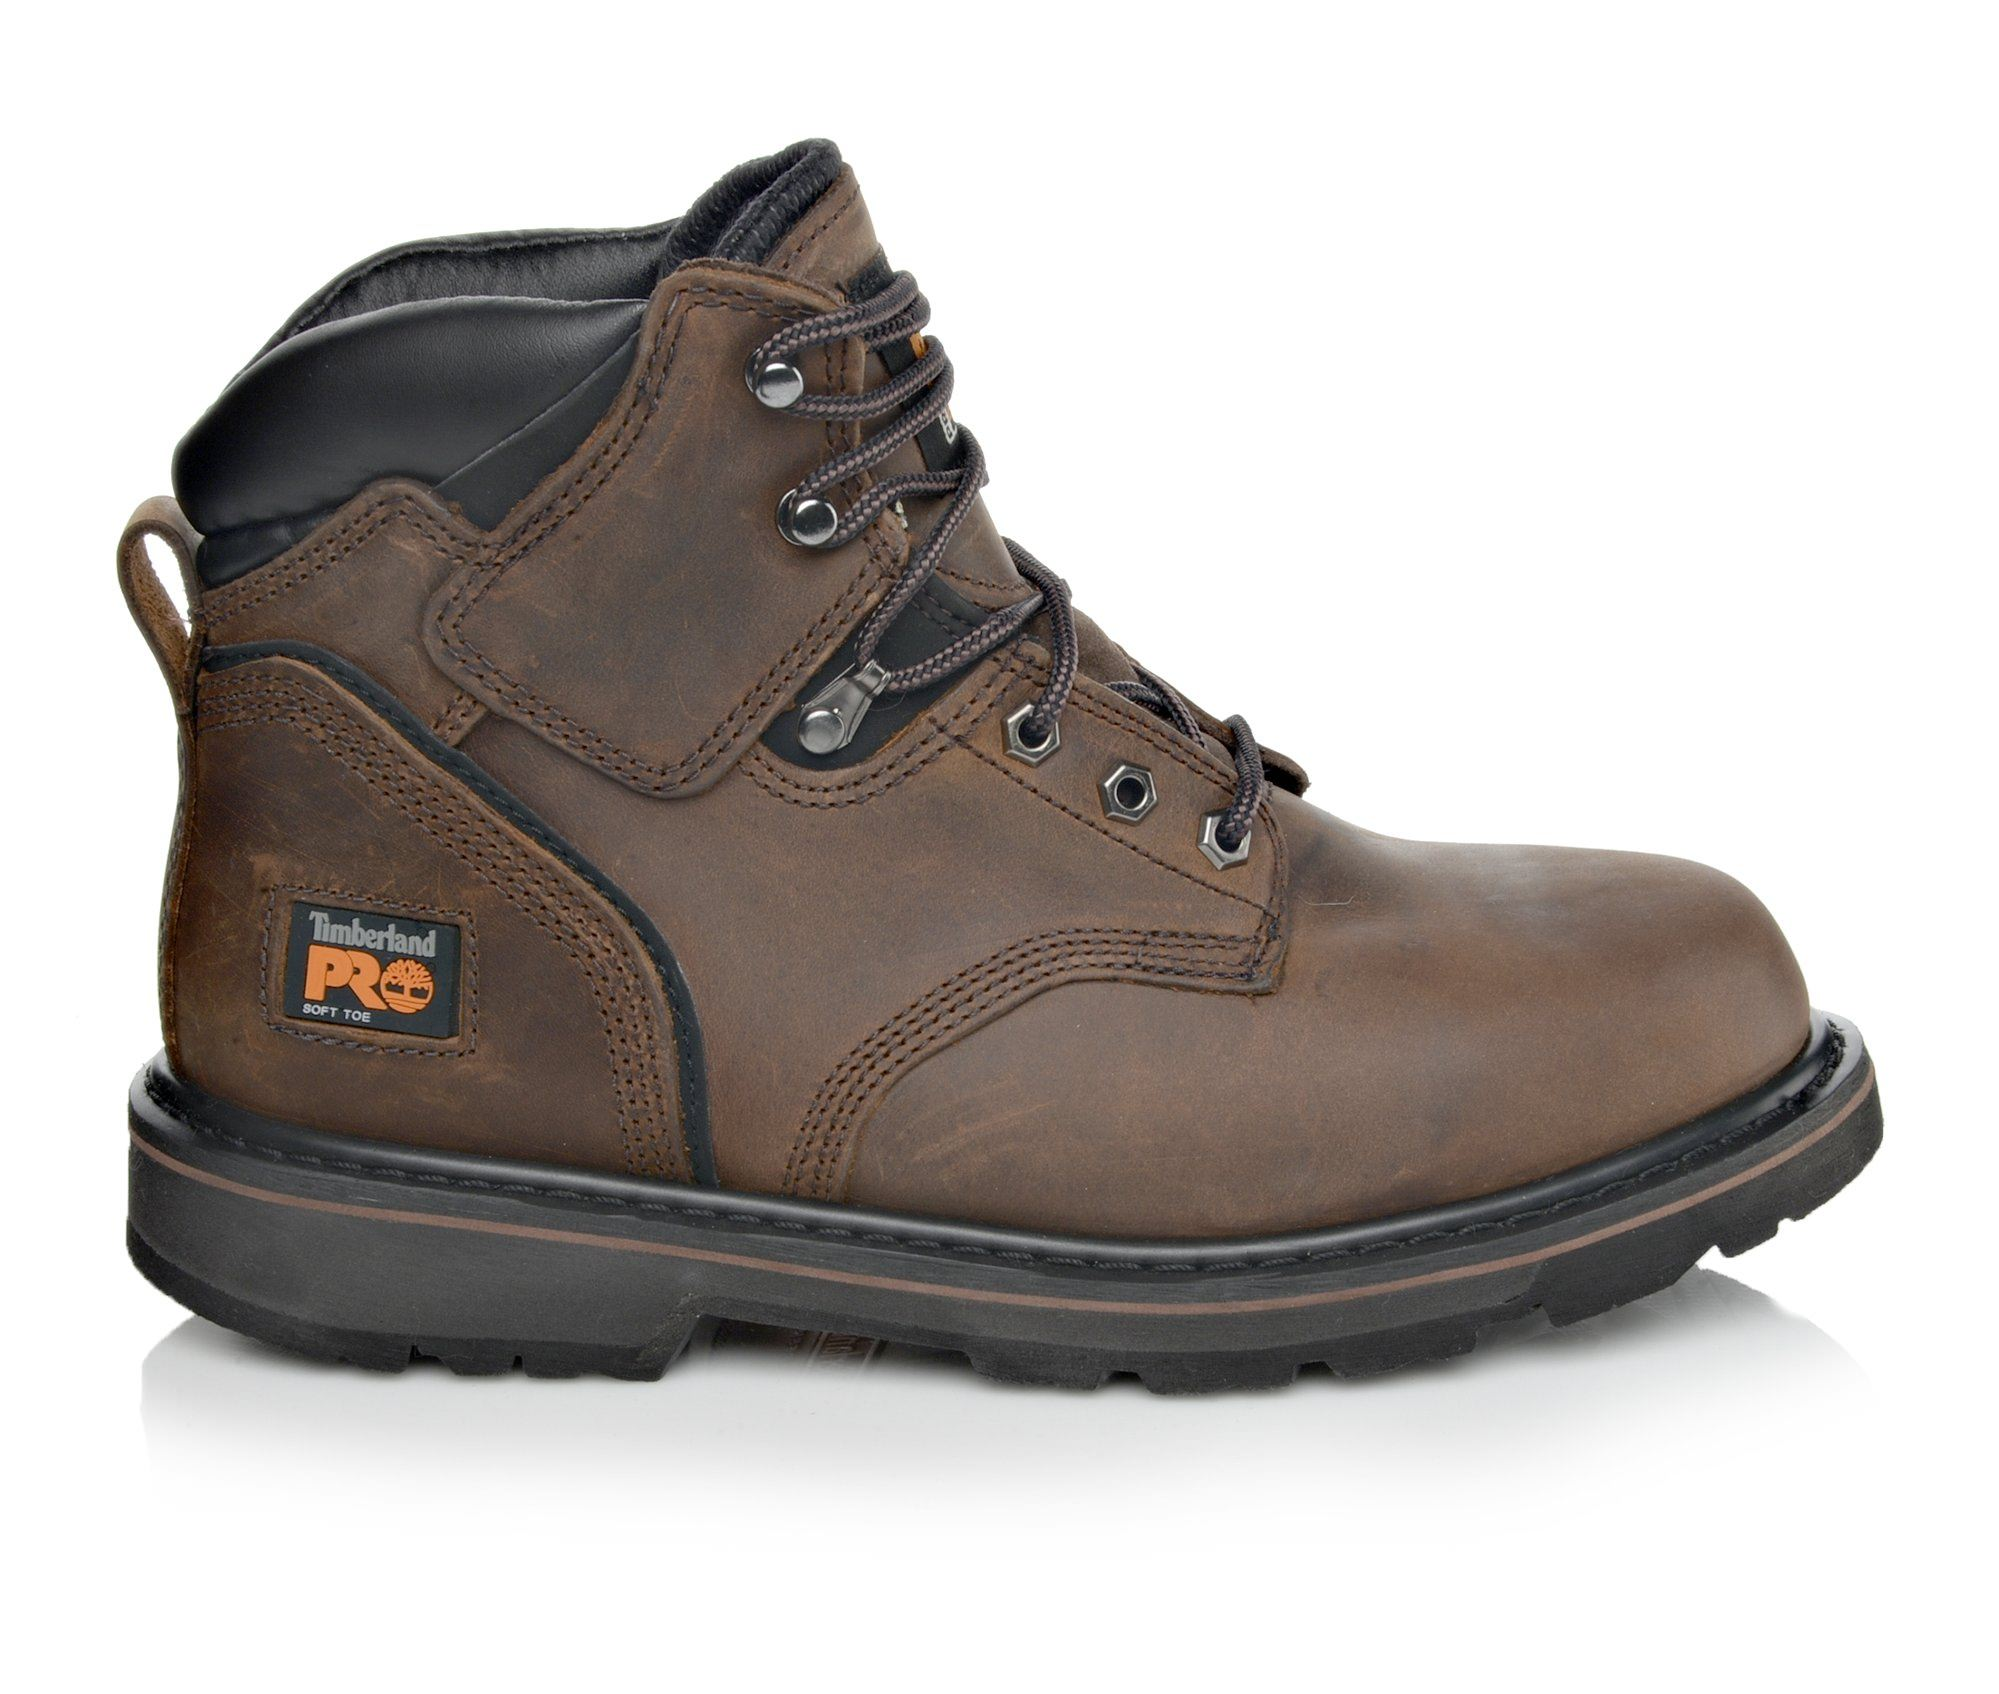 Timberland Pro Pit Boss 6 Inch 33046 Men's Boots (Brown Leather)